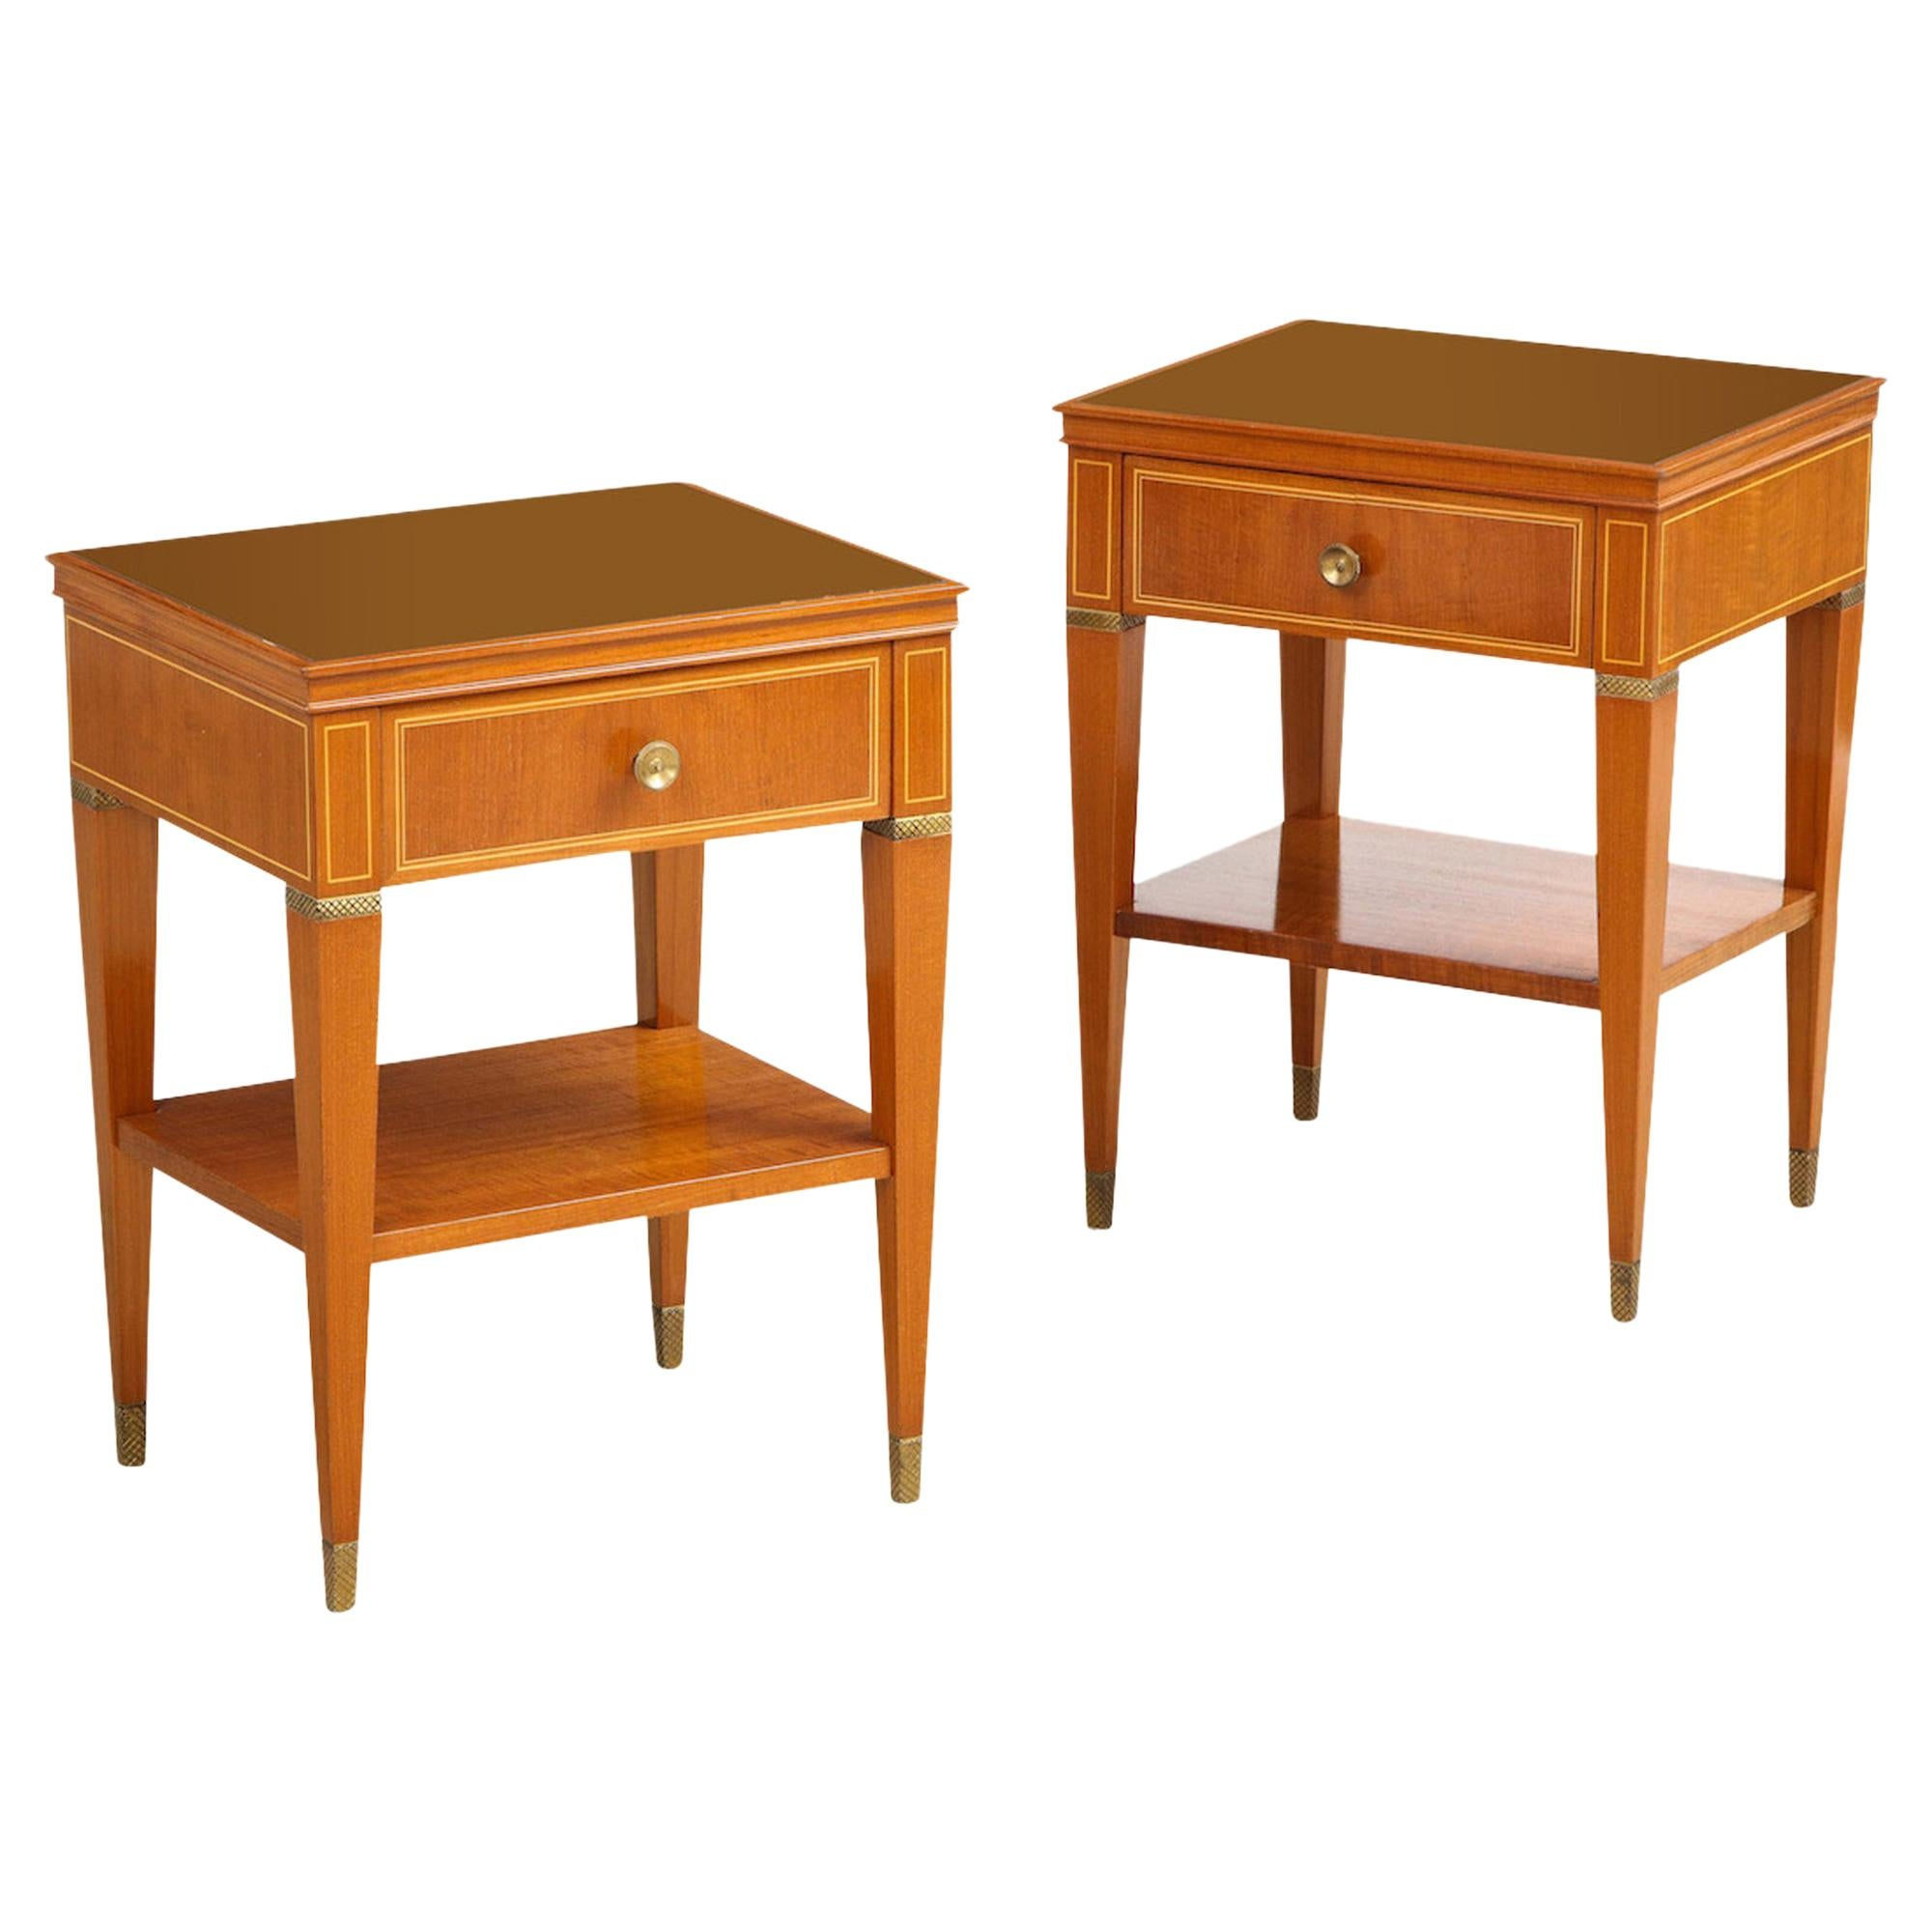 Pair of Bedside Tables by Paolo Buffa